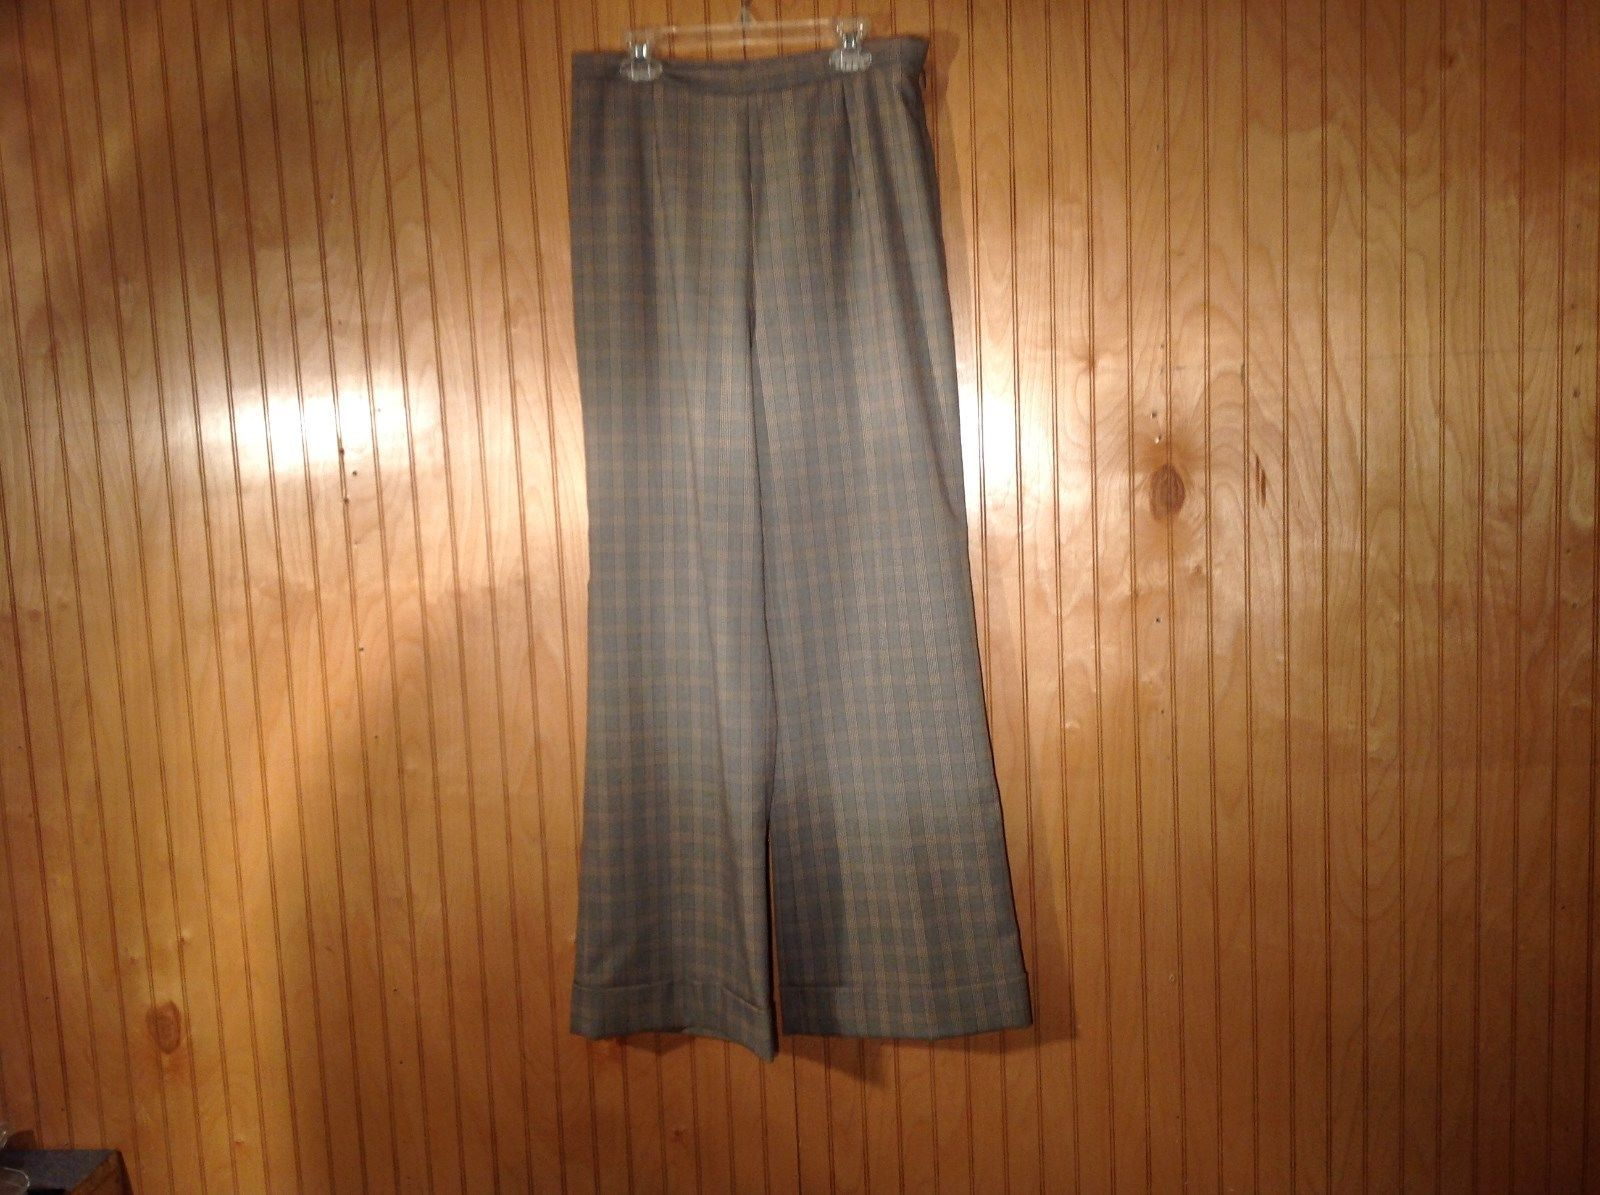 Talbots Stretch Size 8 Plaid Pants Made in USA Cuffed Pant Legs Side Zipper